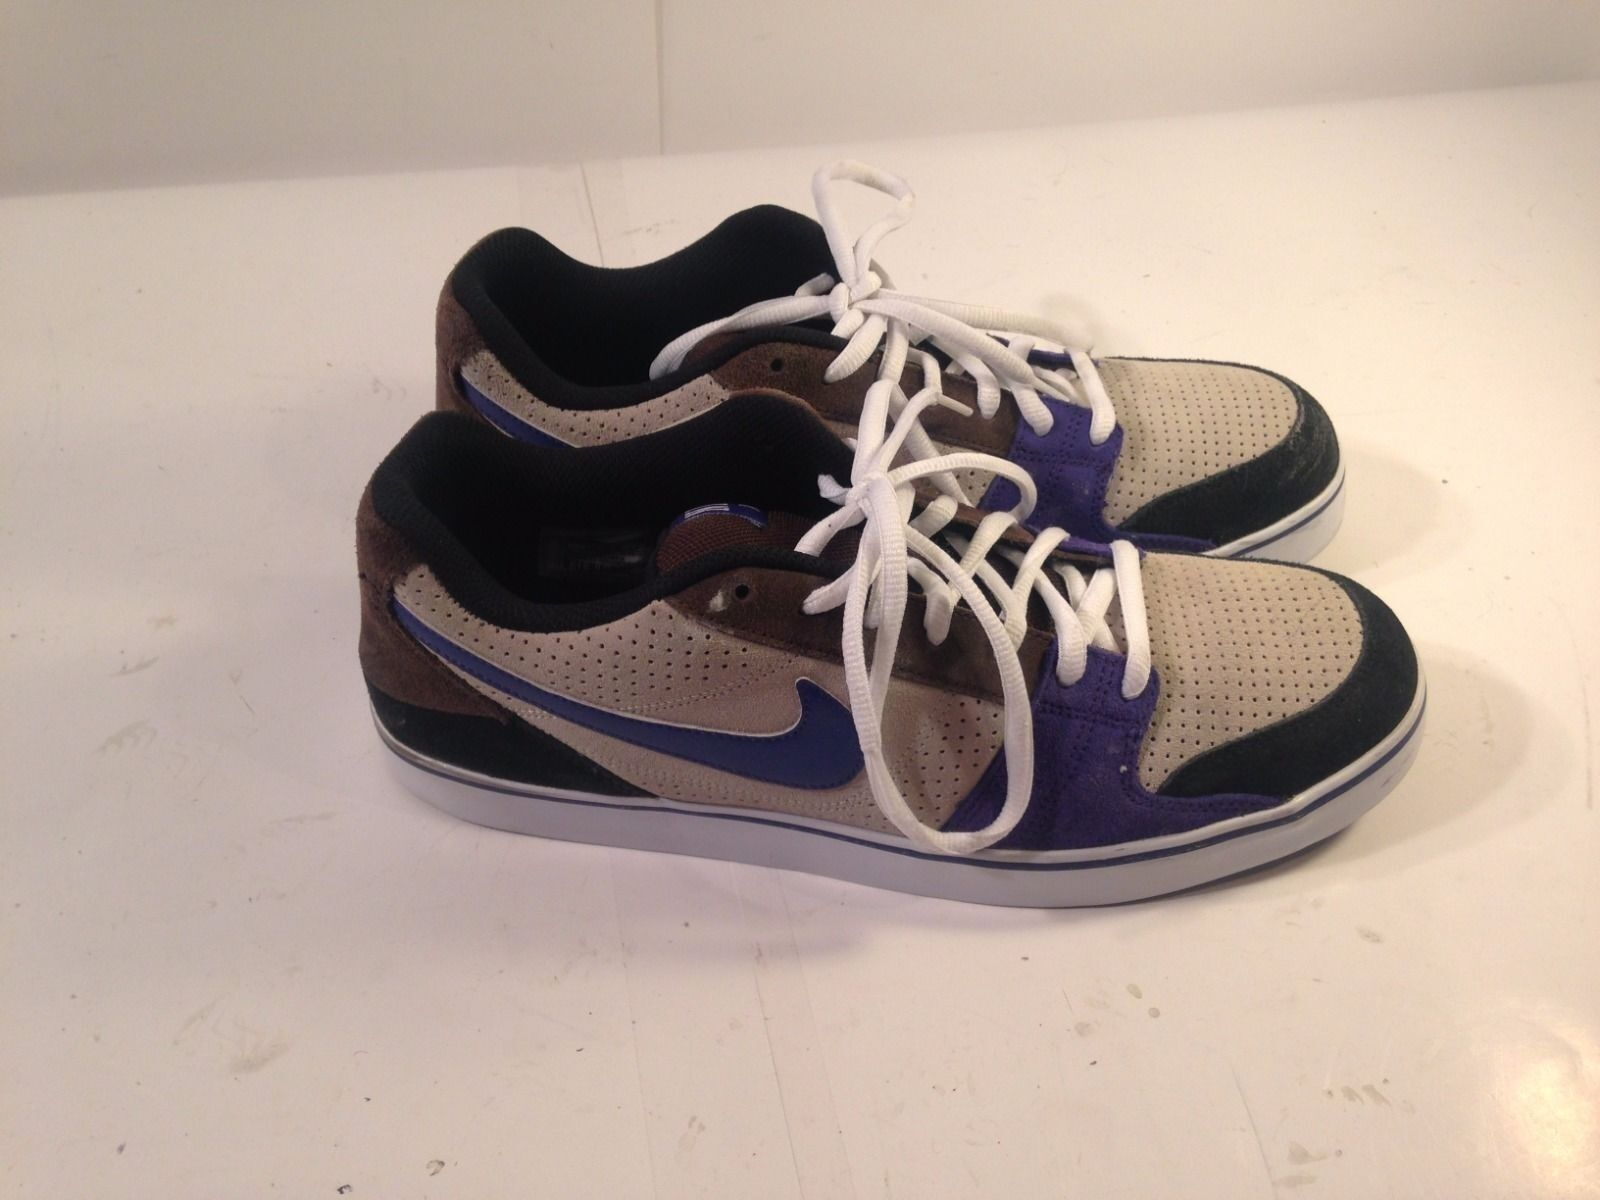 1c1c53f34a6 Men's Nike Shoe 13 Nike Granite and Purple 395770-001 Size Rukus ...